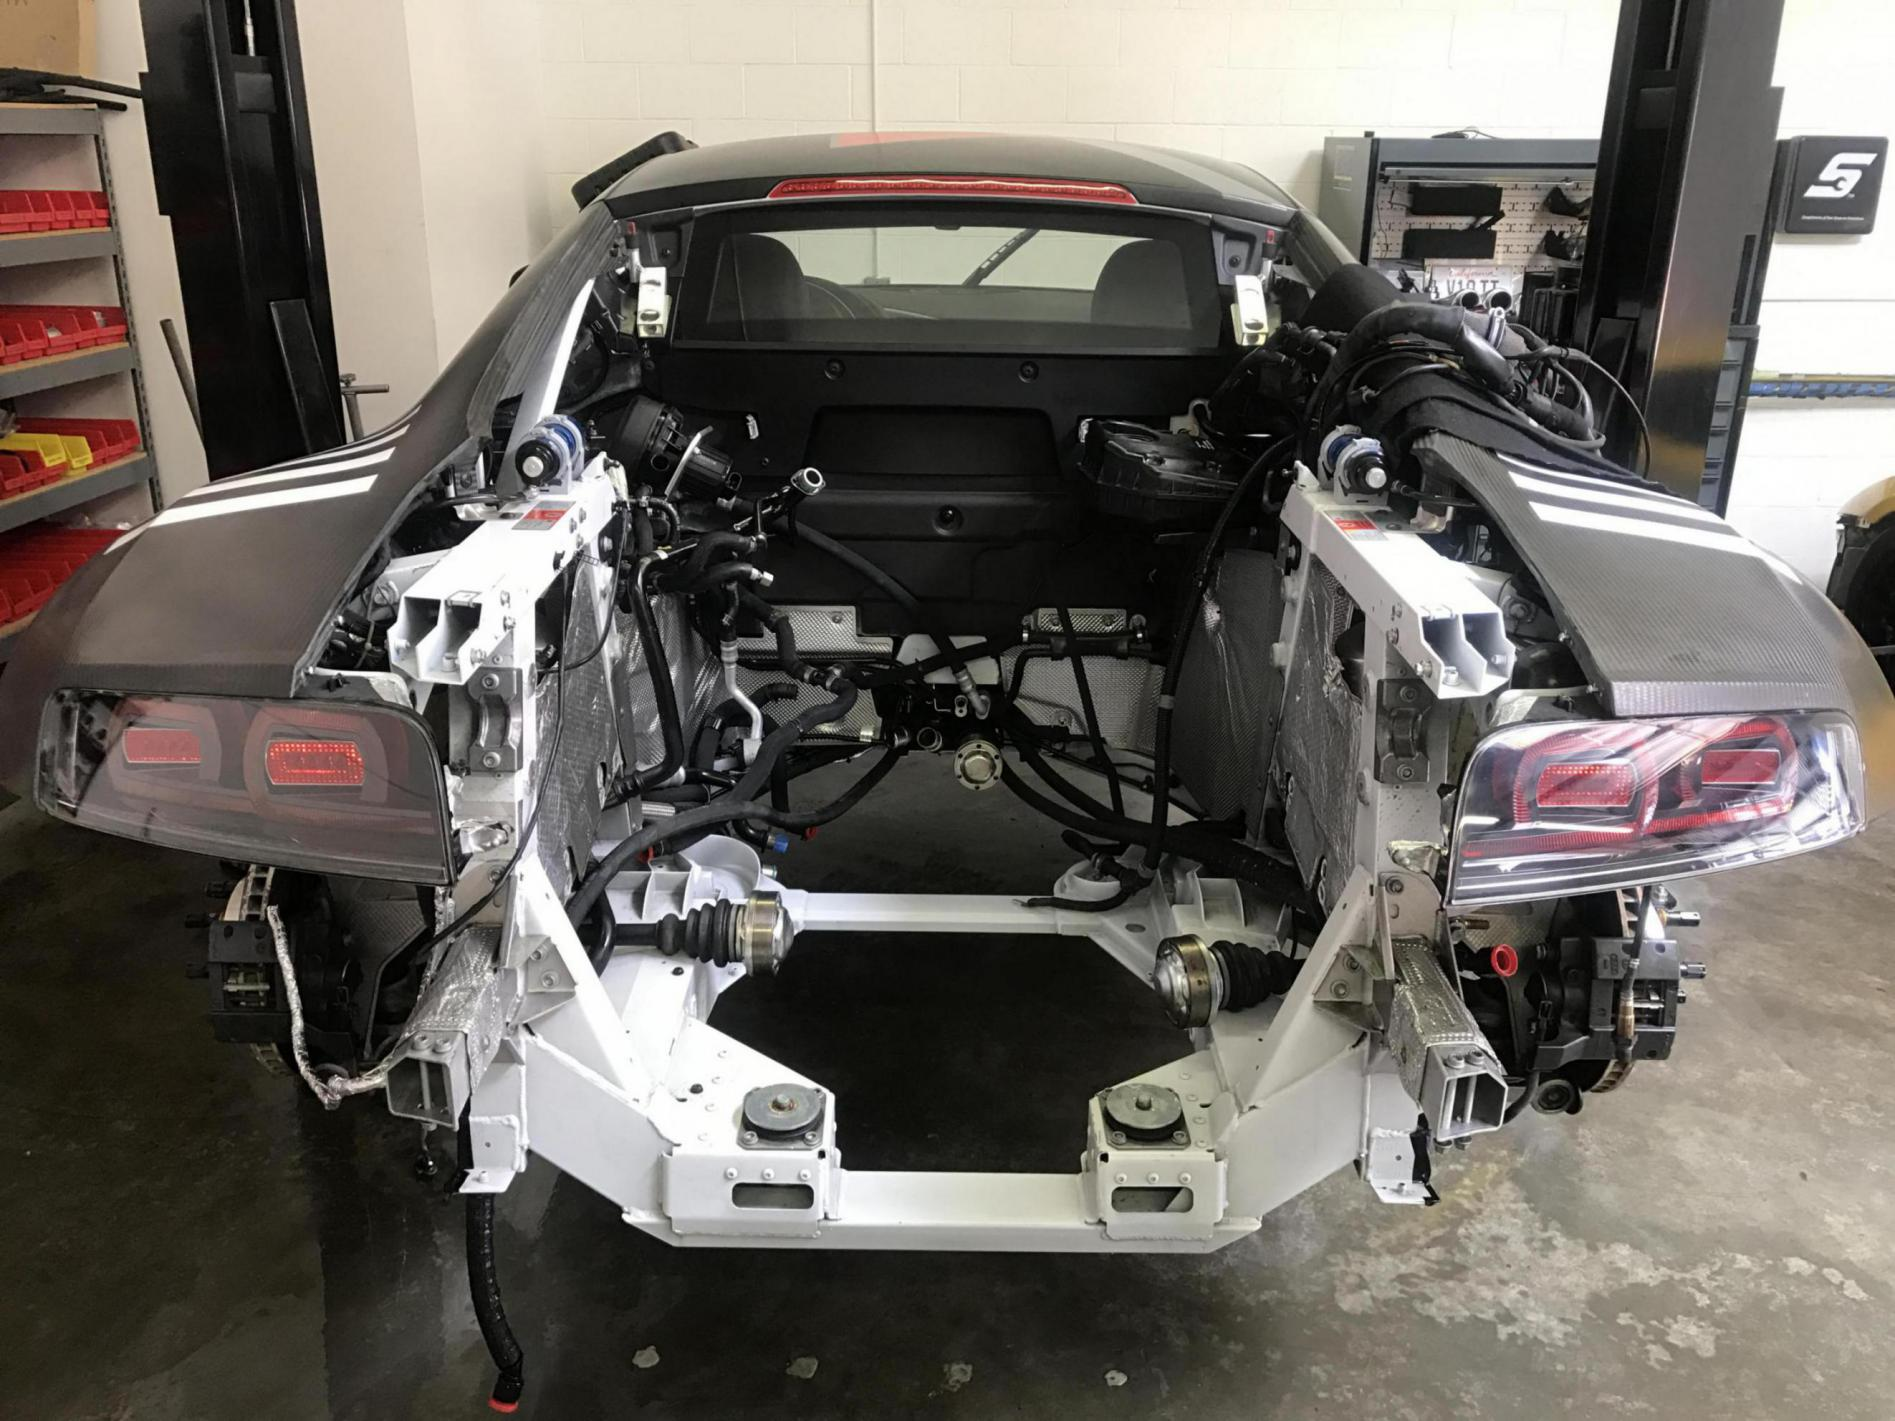 CFi Designs Twin Turbo on Gen 1 V8 R8 - Built for Track! More to come.....-a8d0d776-ed56-4102-8966-182d64319677_1508000544559.jpg